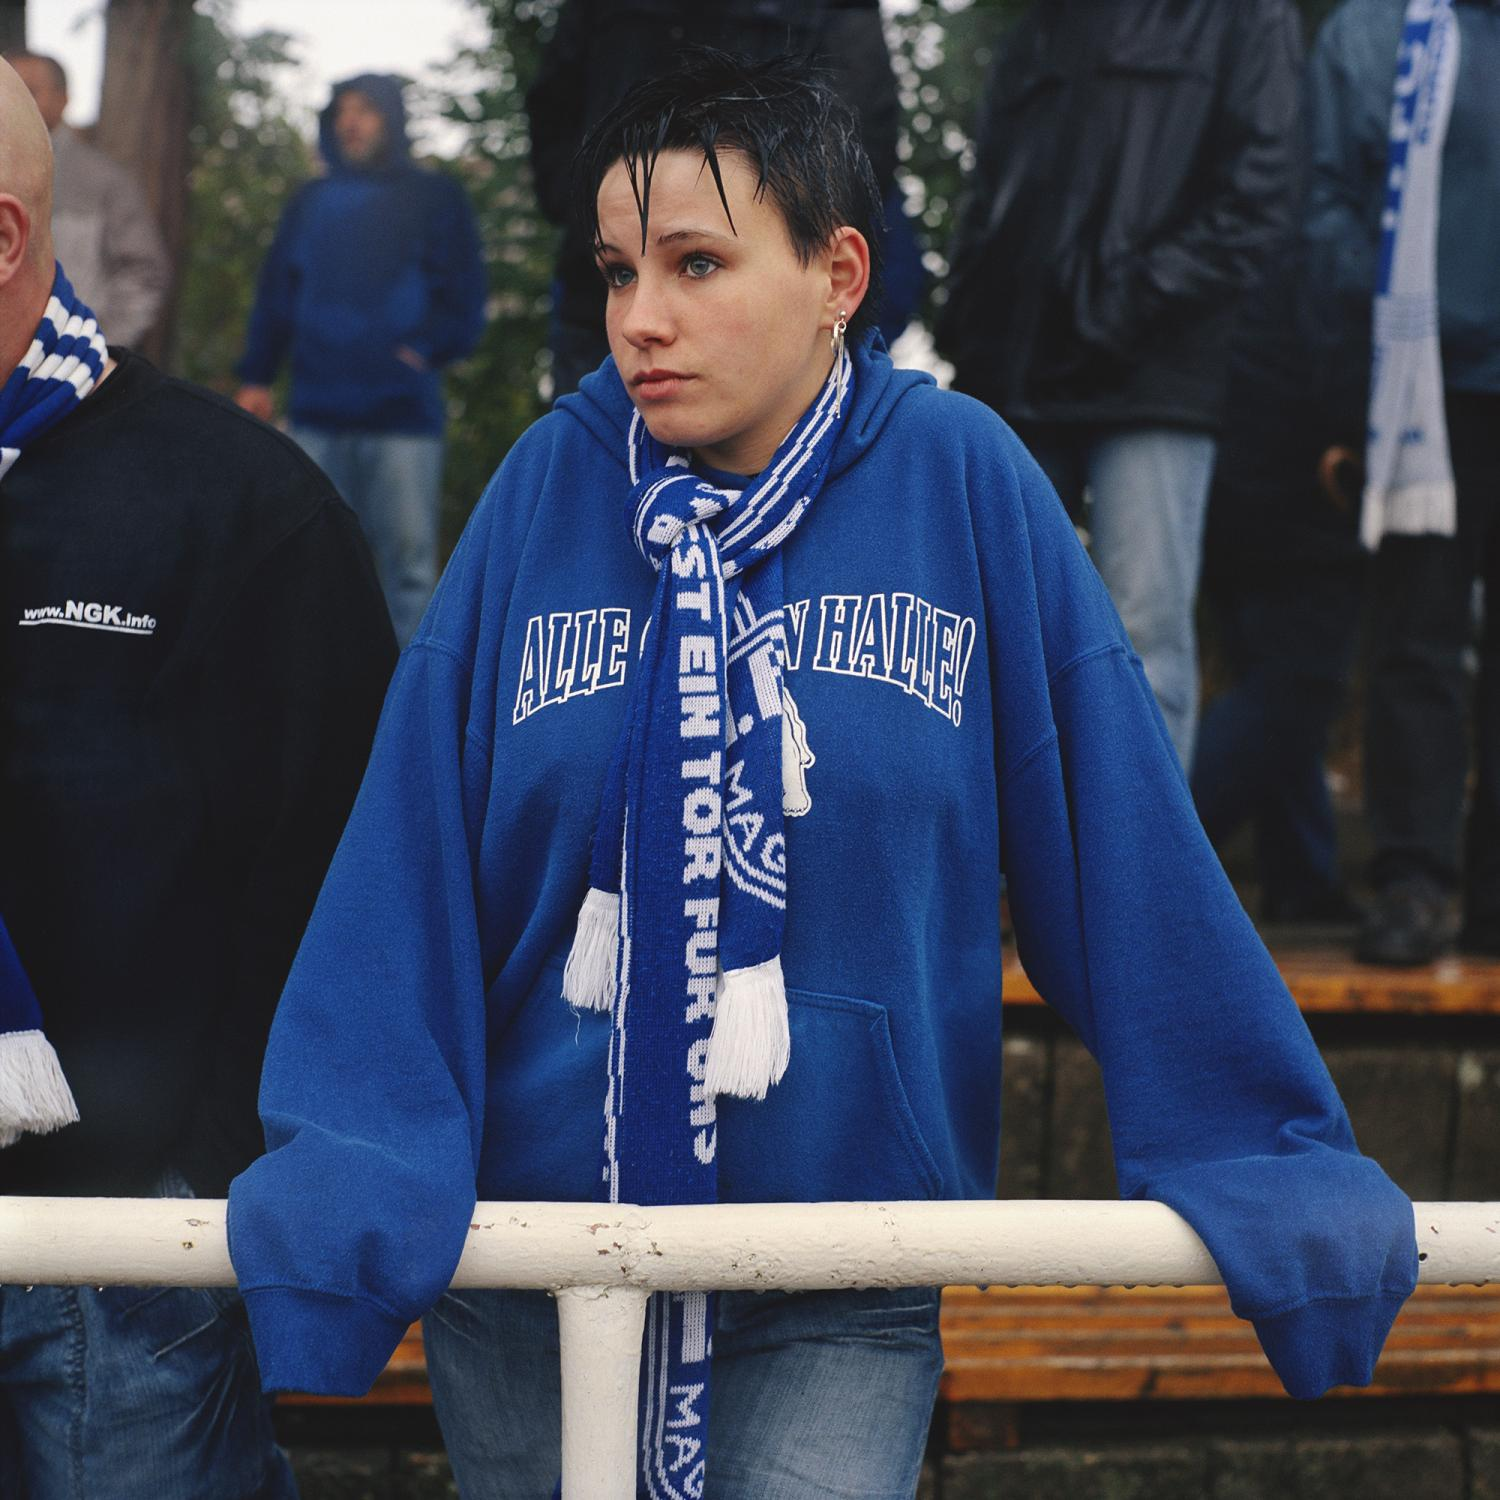 A supporters stands on the stands under the rain in Klötze, during a play of the regional cup VfB Klötze v 1. FC Magdeburg (0:11).